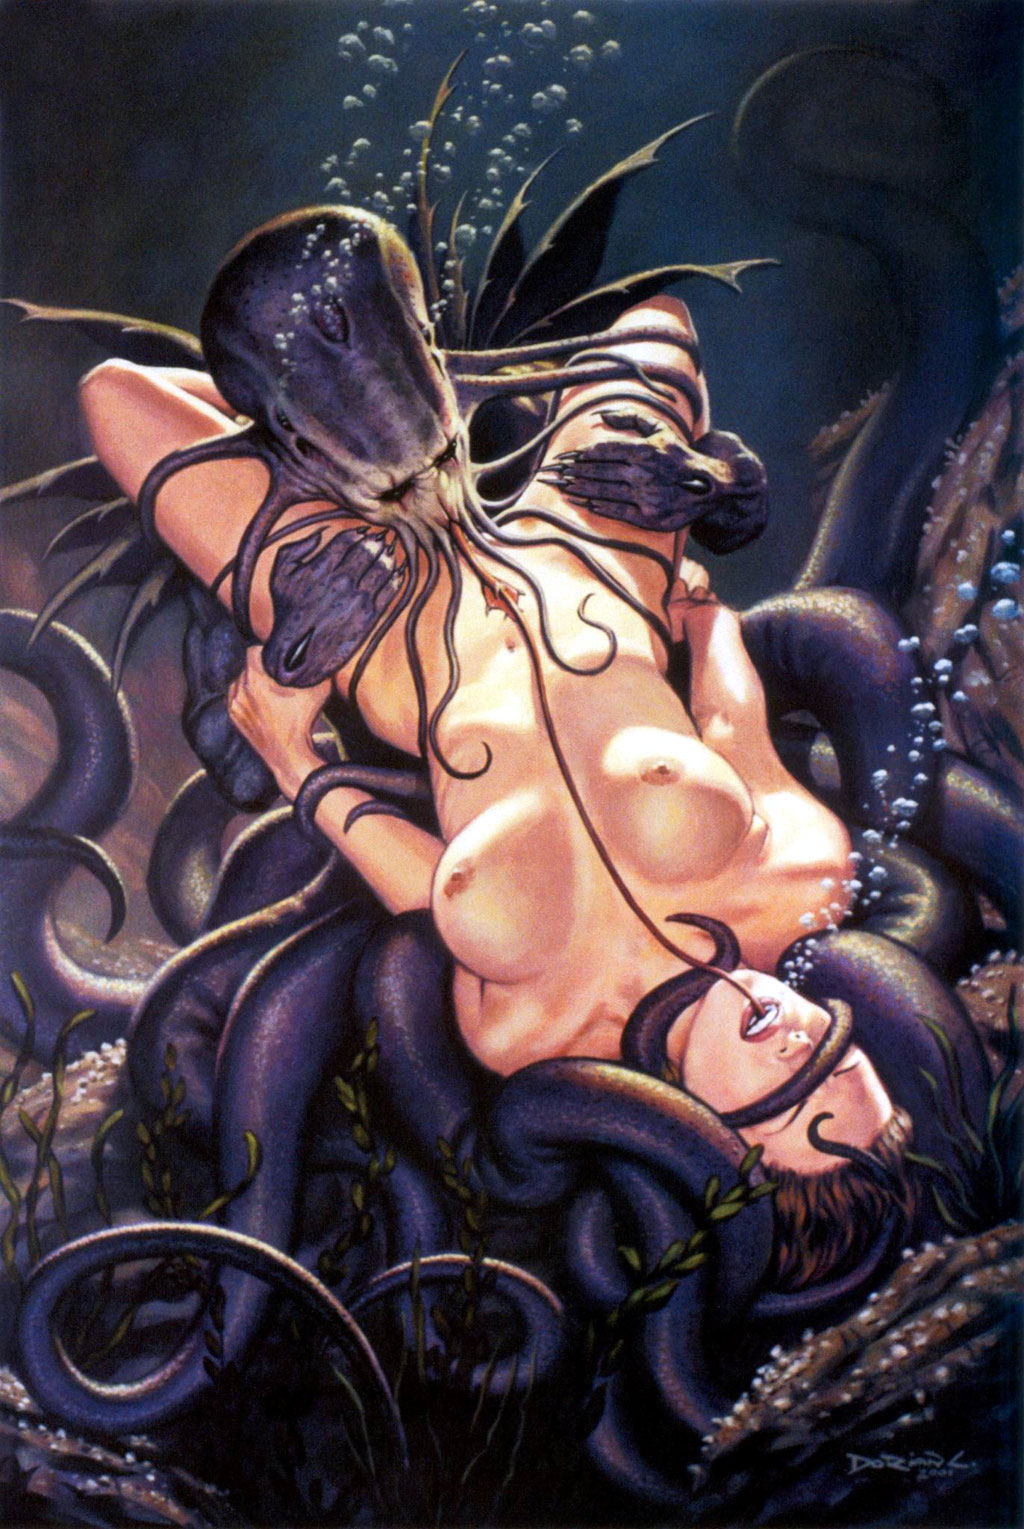 Erotic sex fantasy art sexy videos